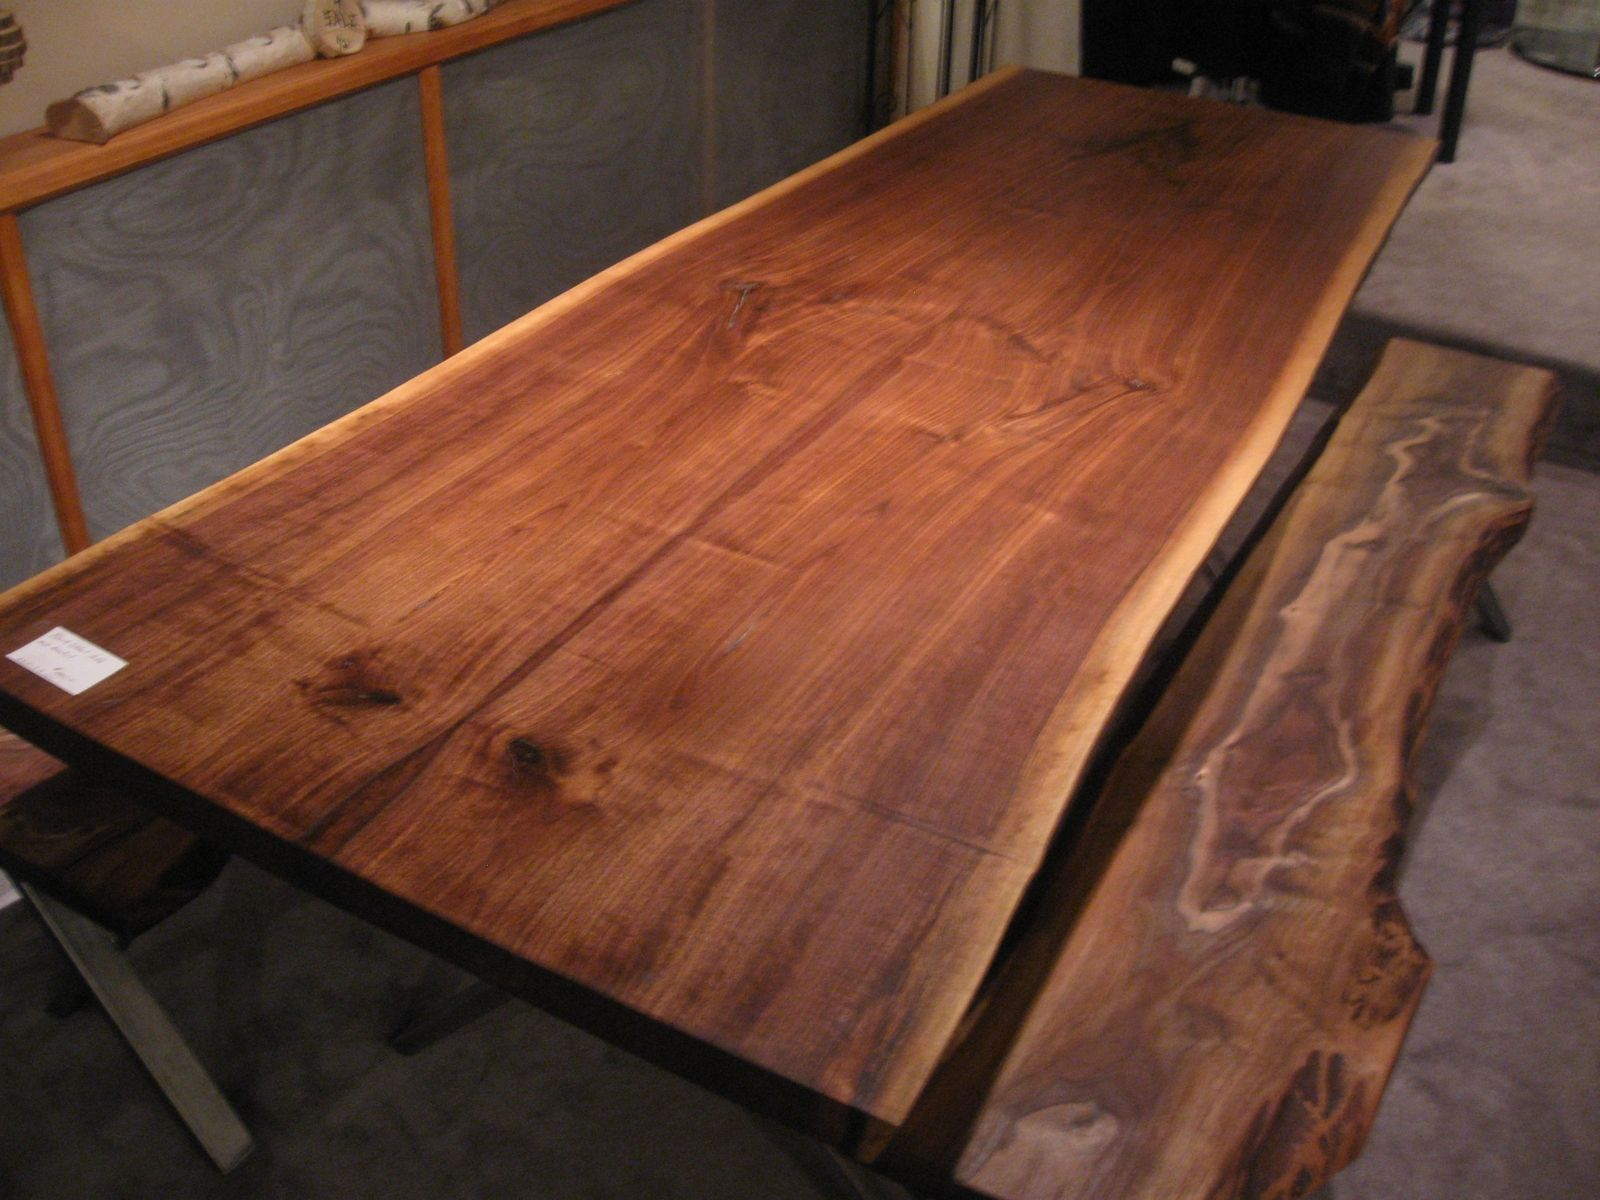 Handmade walnut live edge slab x base table by woodrich for Live edge slab lumber